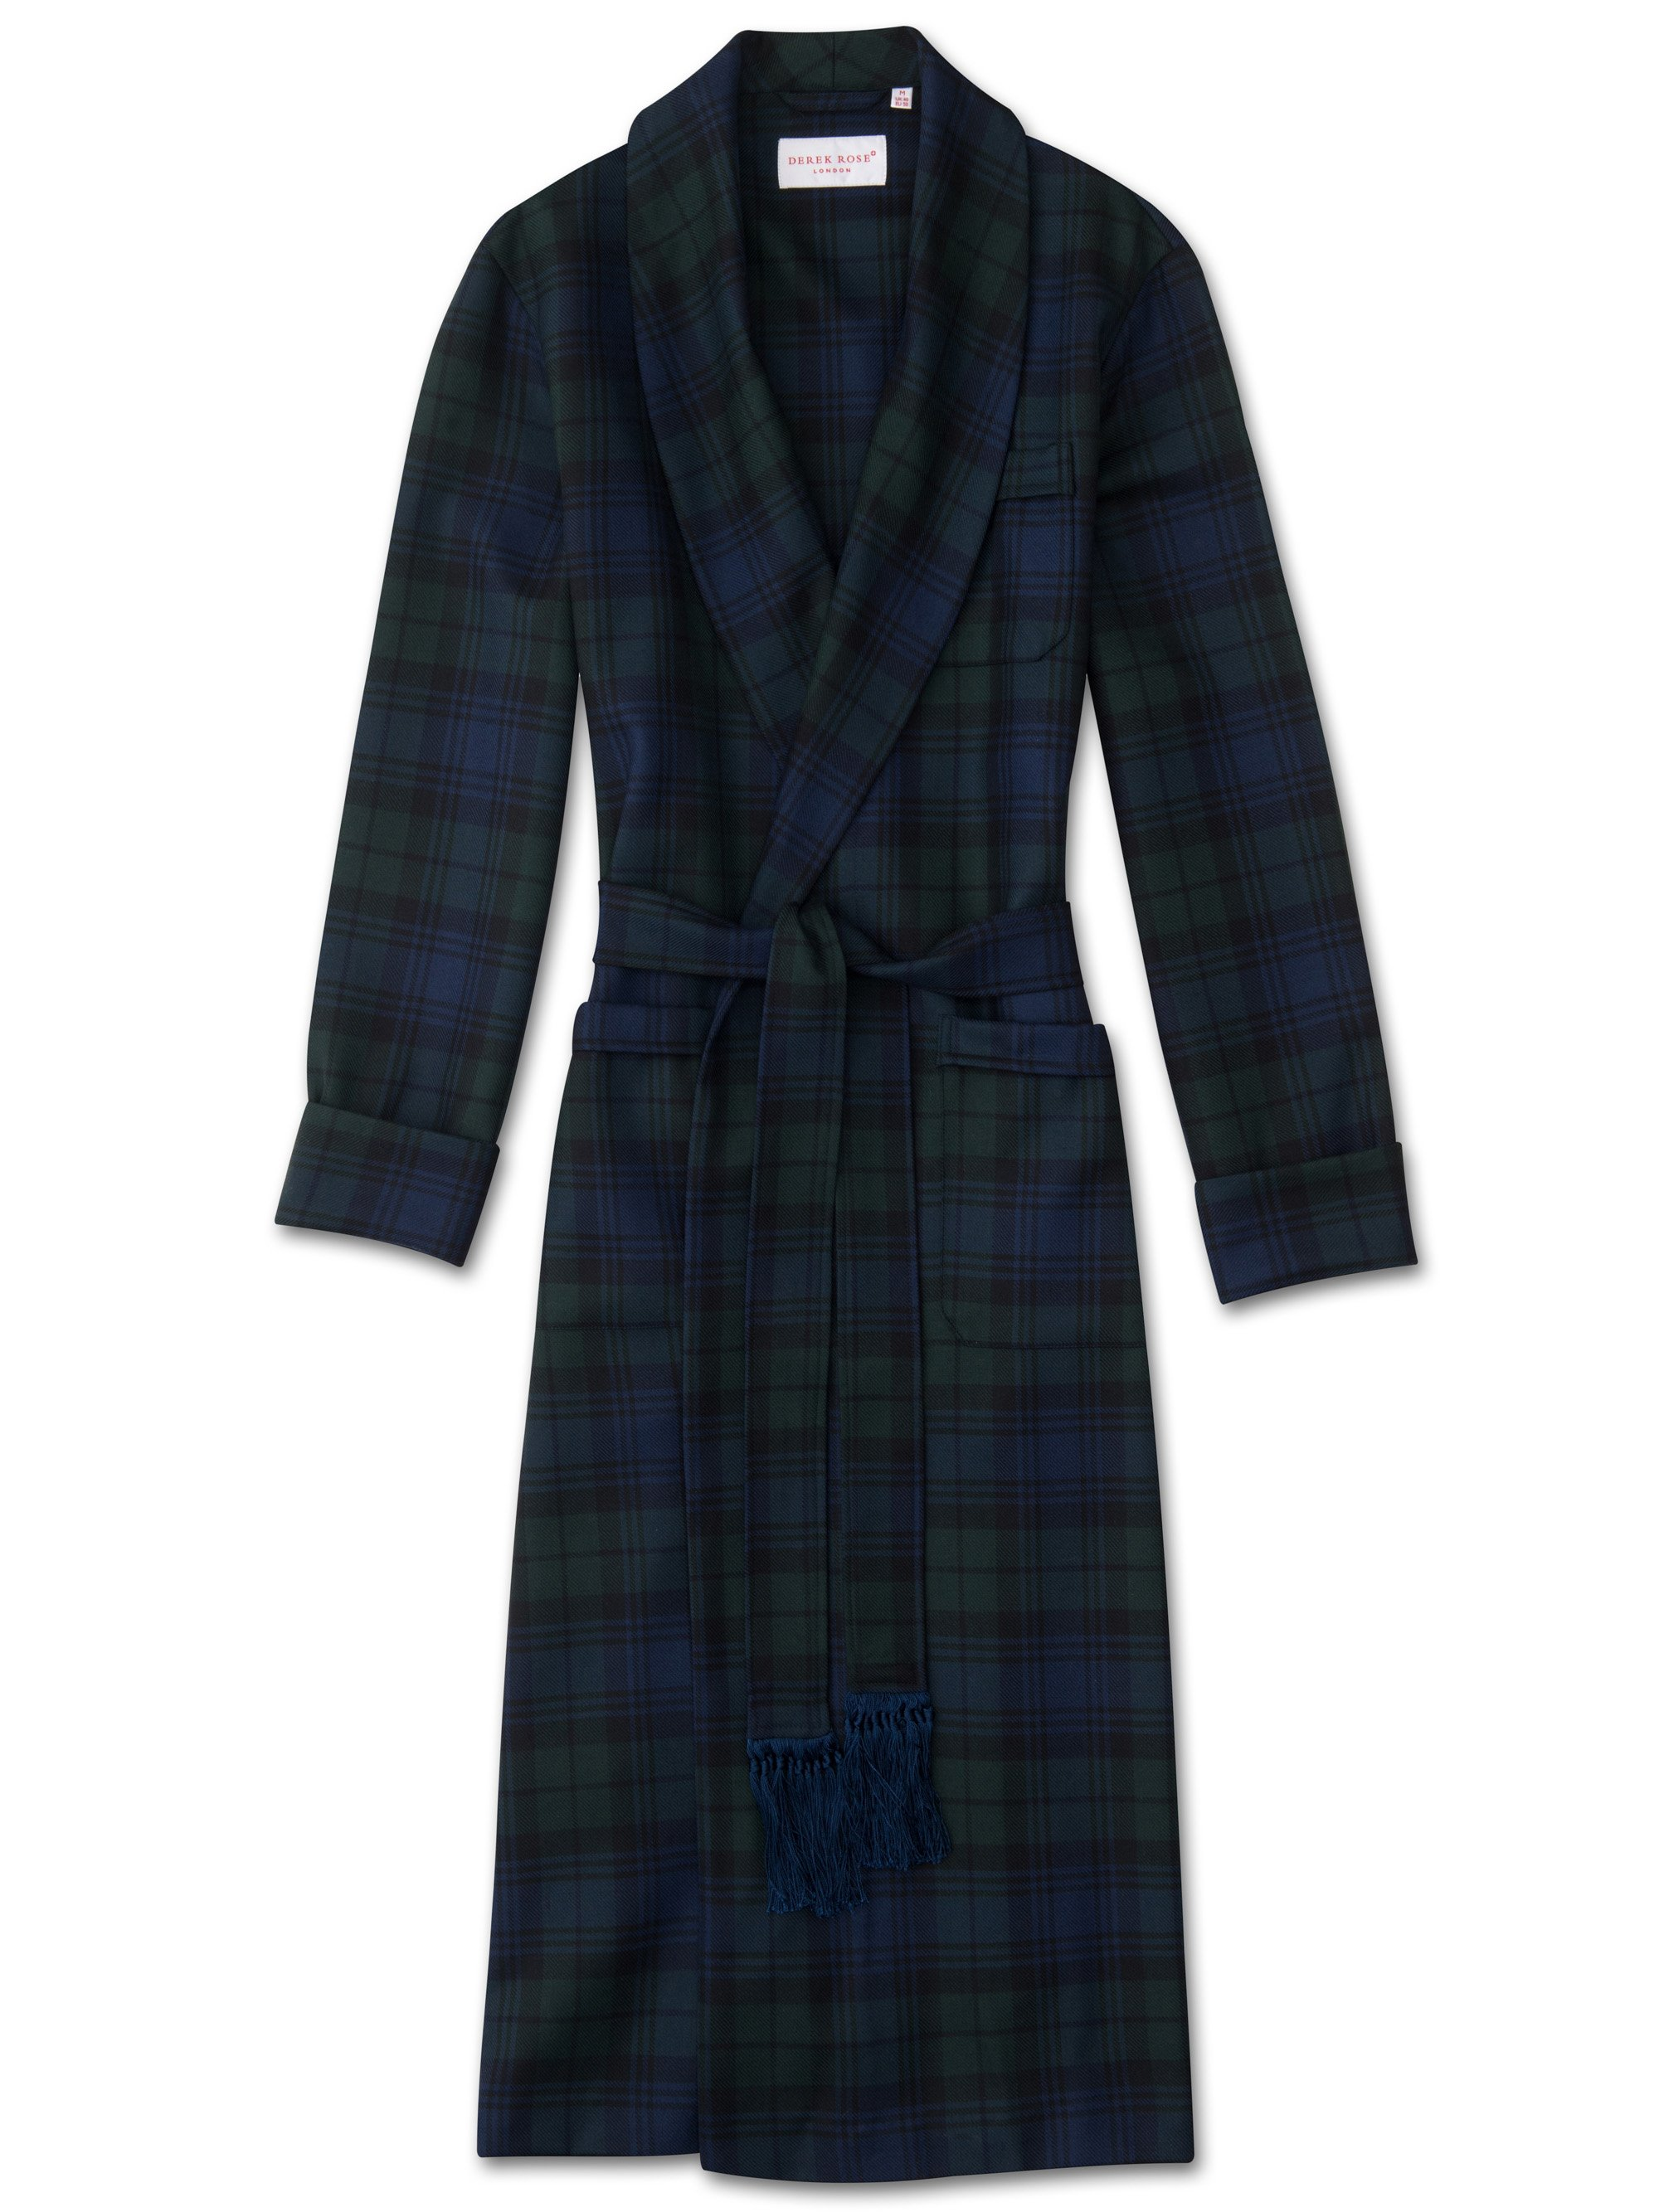 Men's Classic Dressing Gown Tartan Pure Wool Black Watch